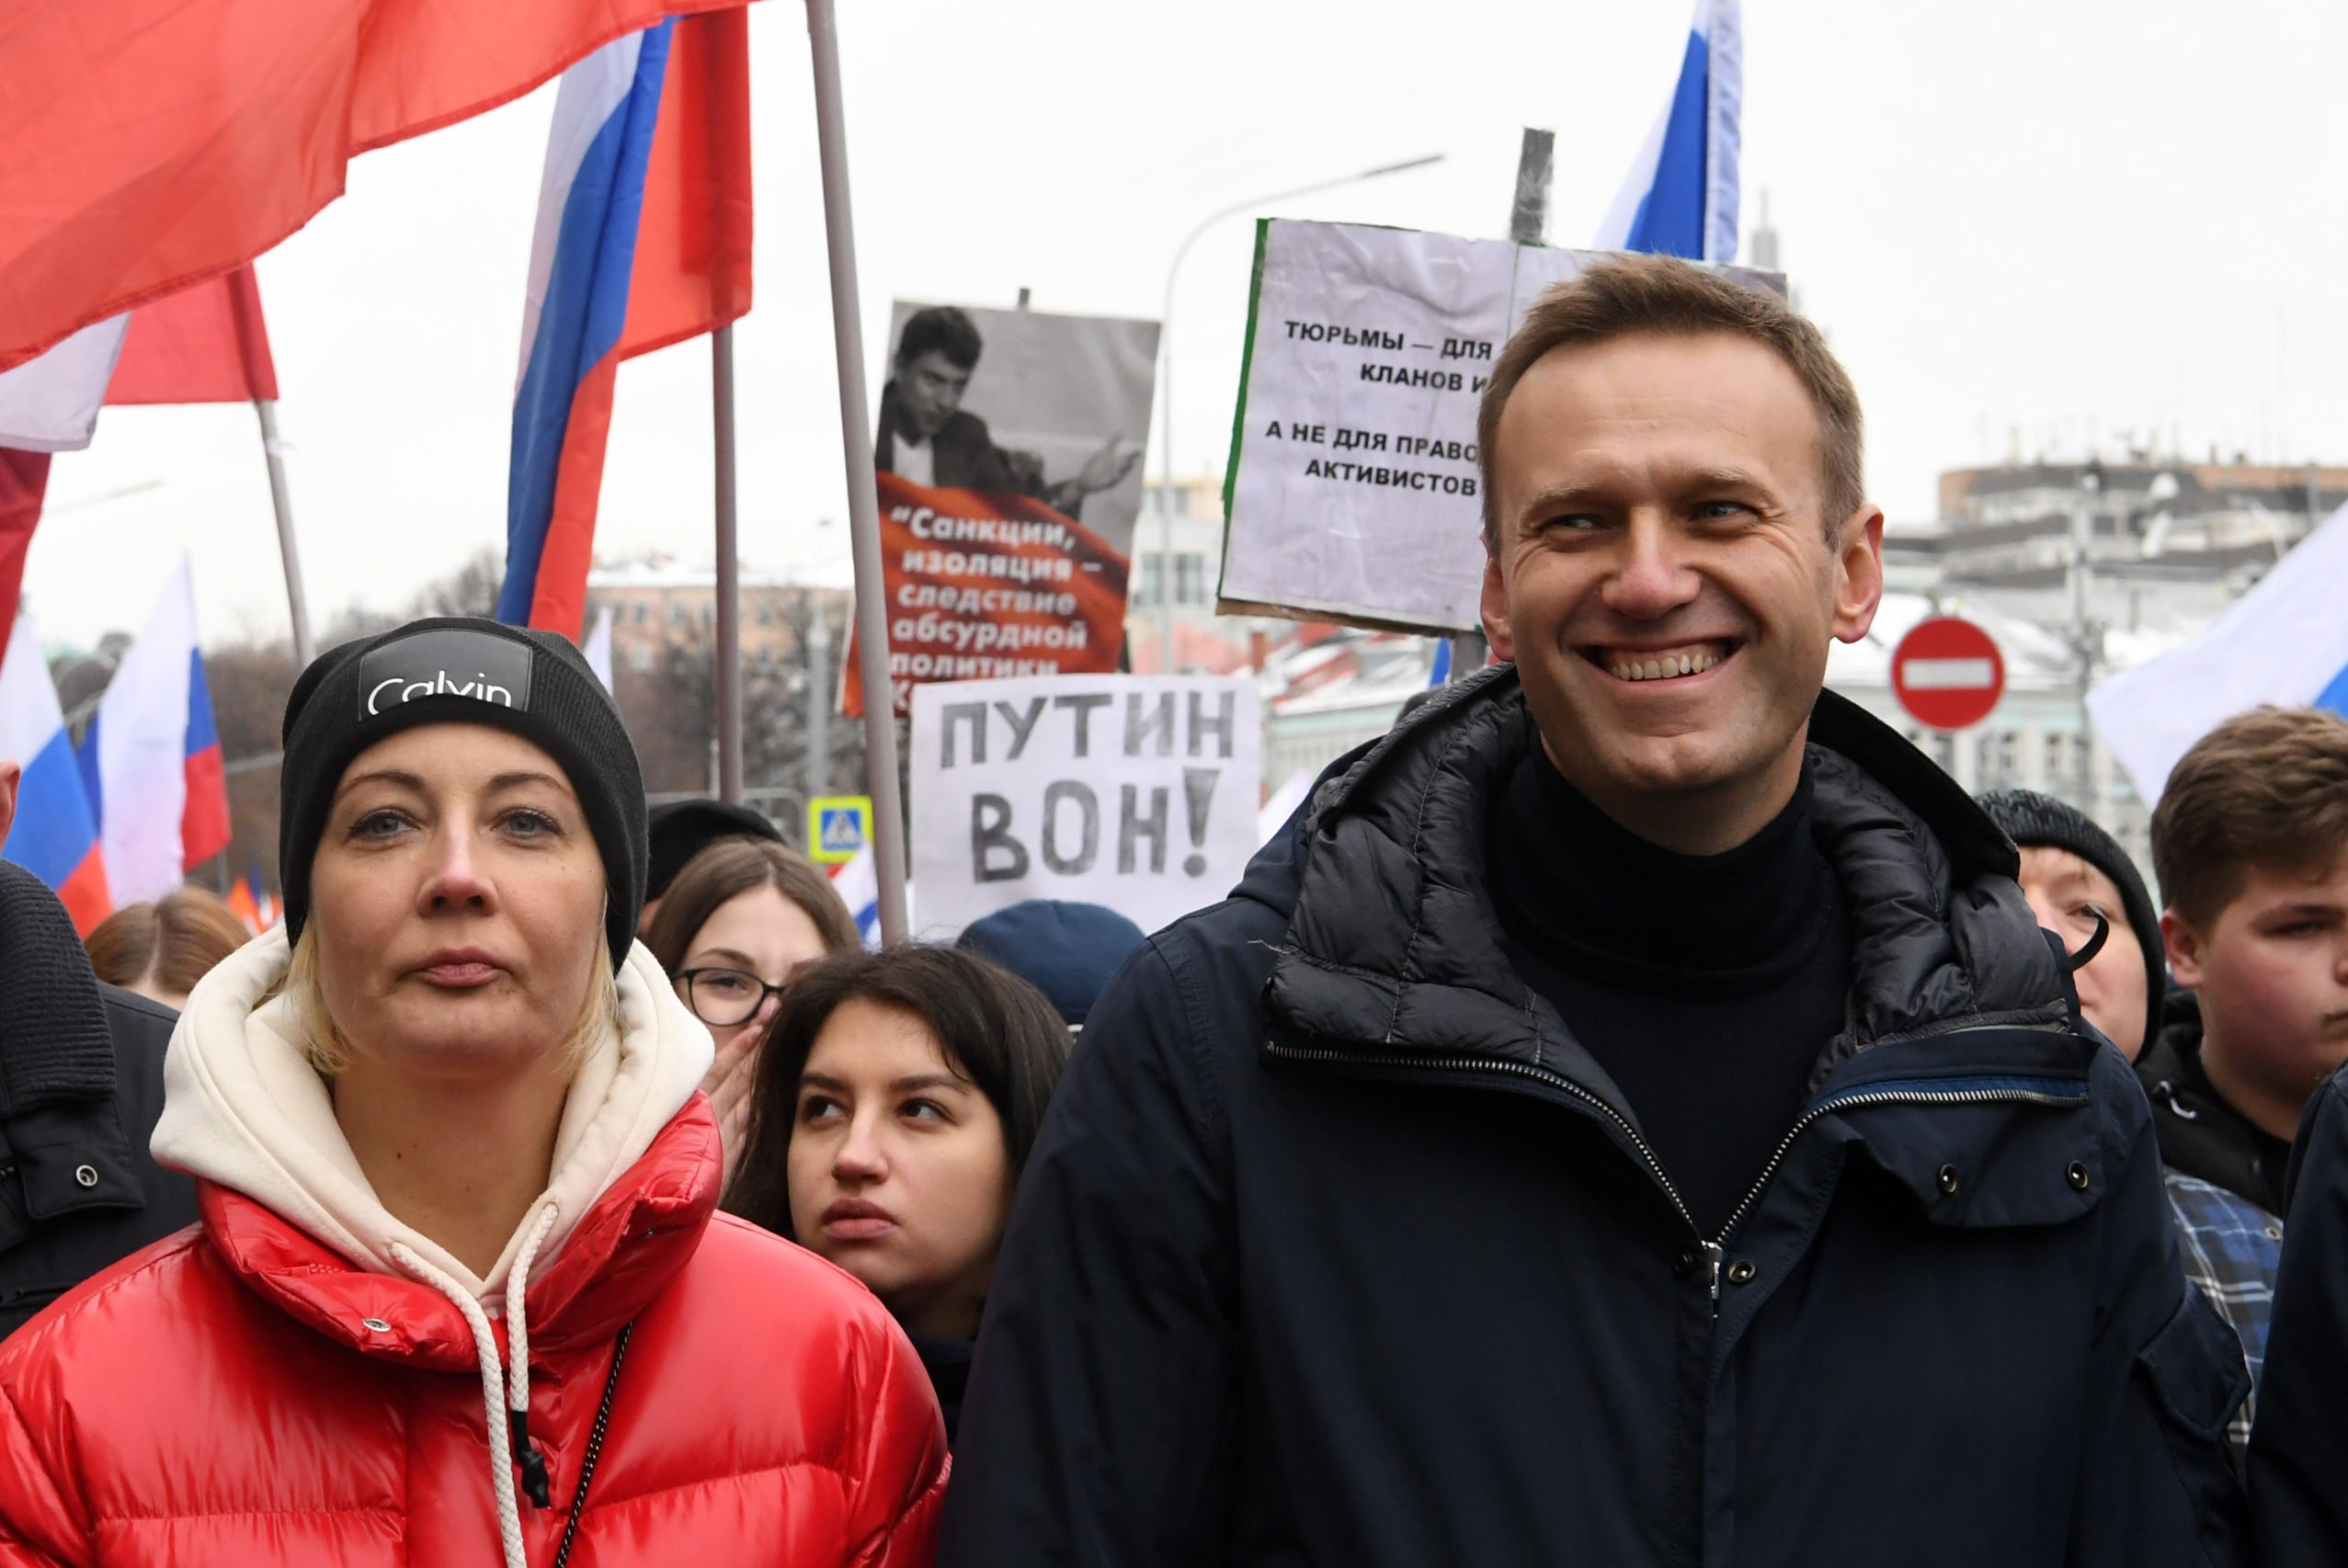 Russian opposition leader Alexei Navalny and his wife Yulia take part in a march in memory of murdered Kremlin critic Boris Nemtsov in central Moscow on February 24, 2019. (Photo by Kirill KUDRYAVTSEV / AFP)